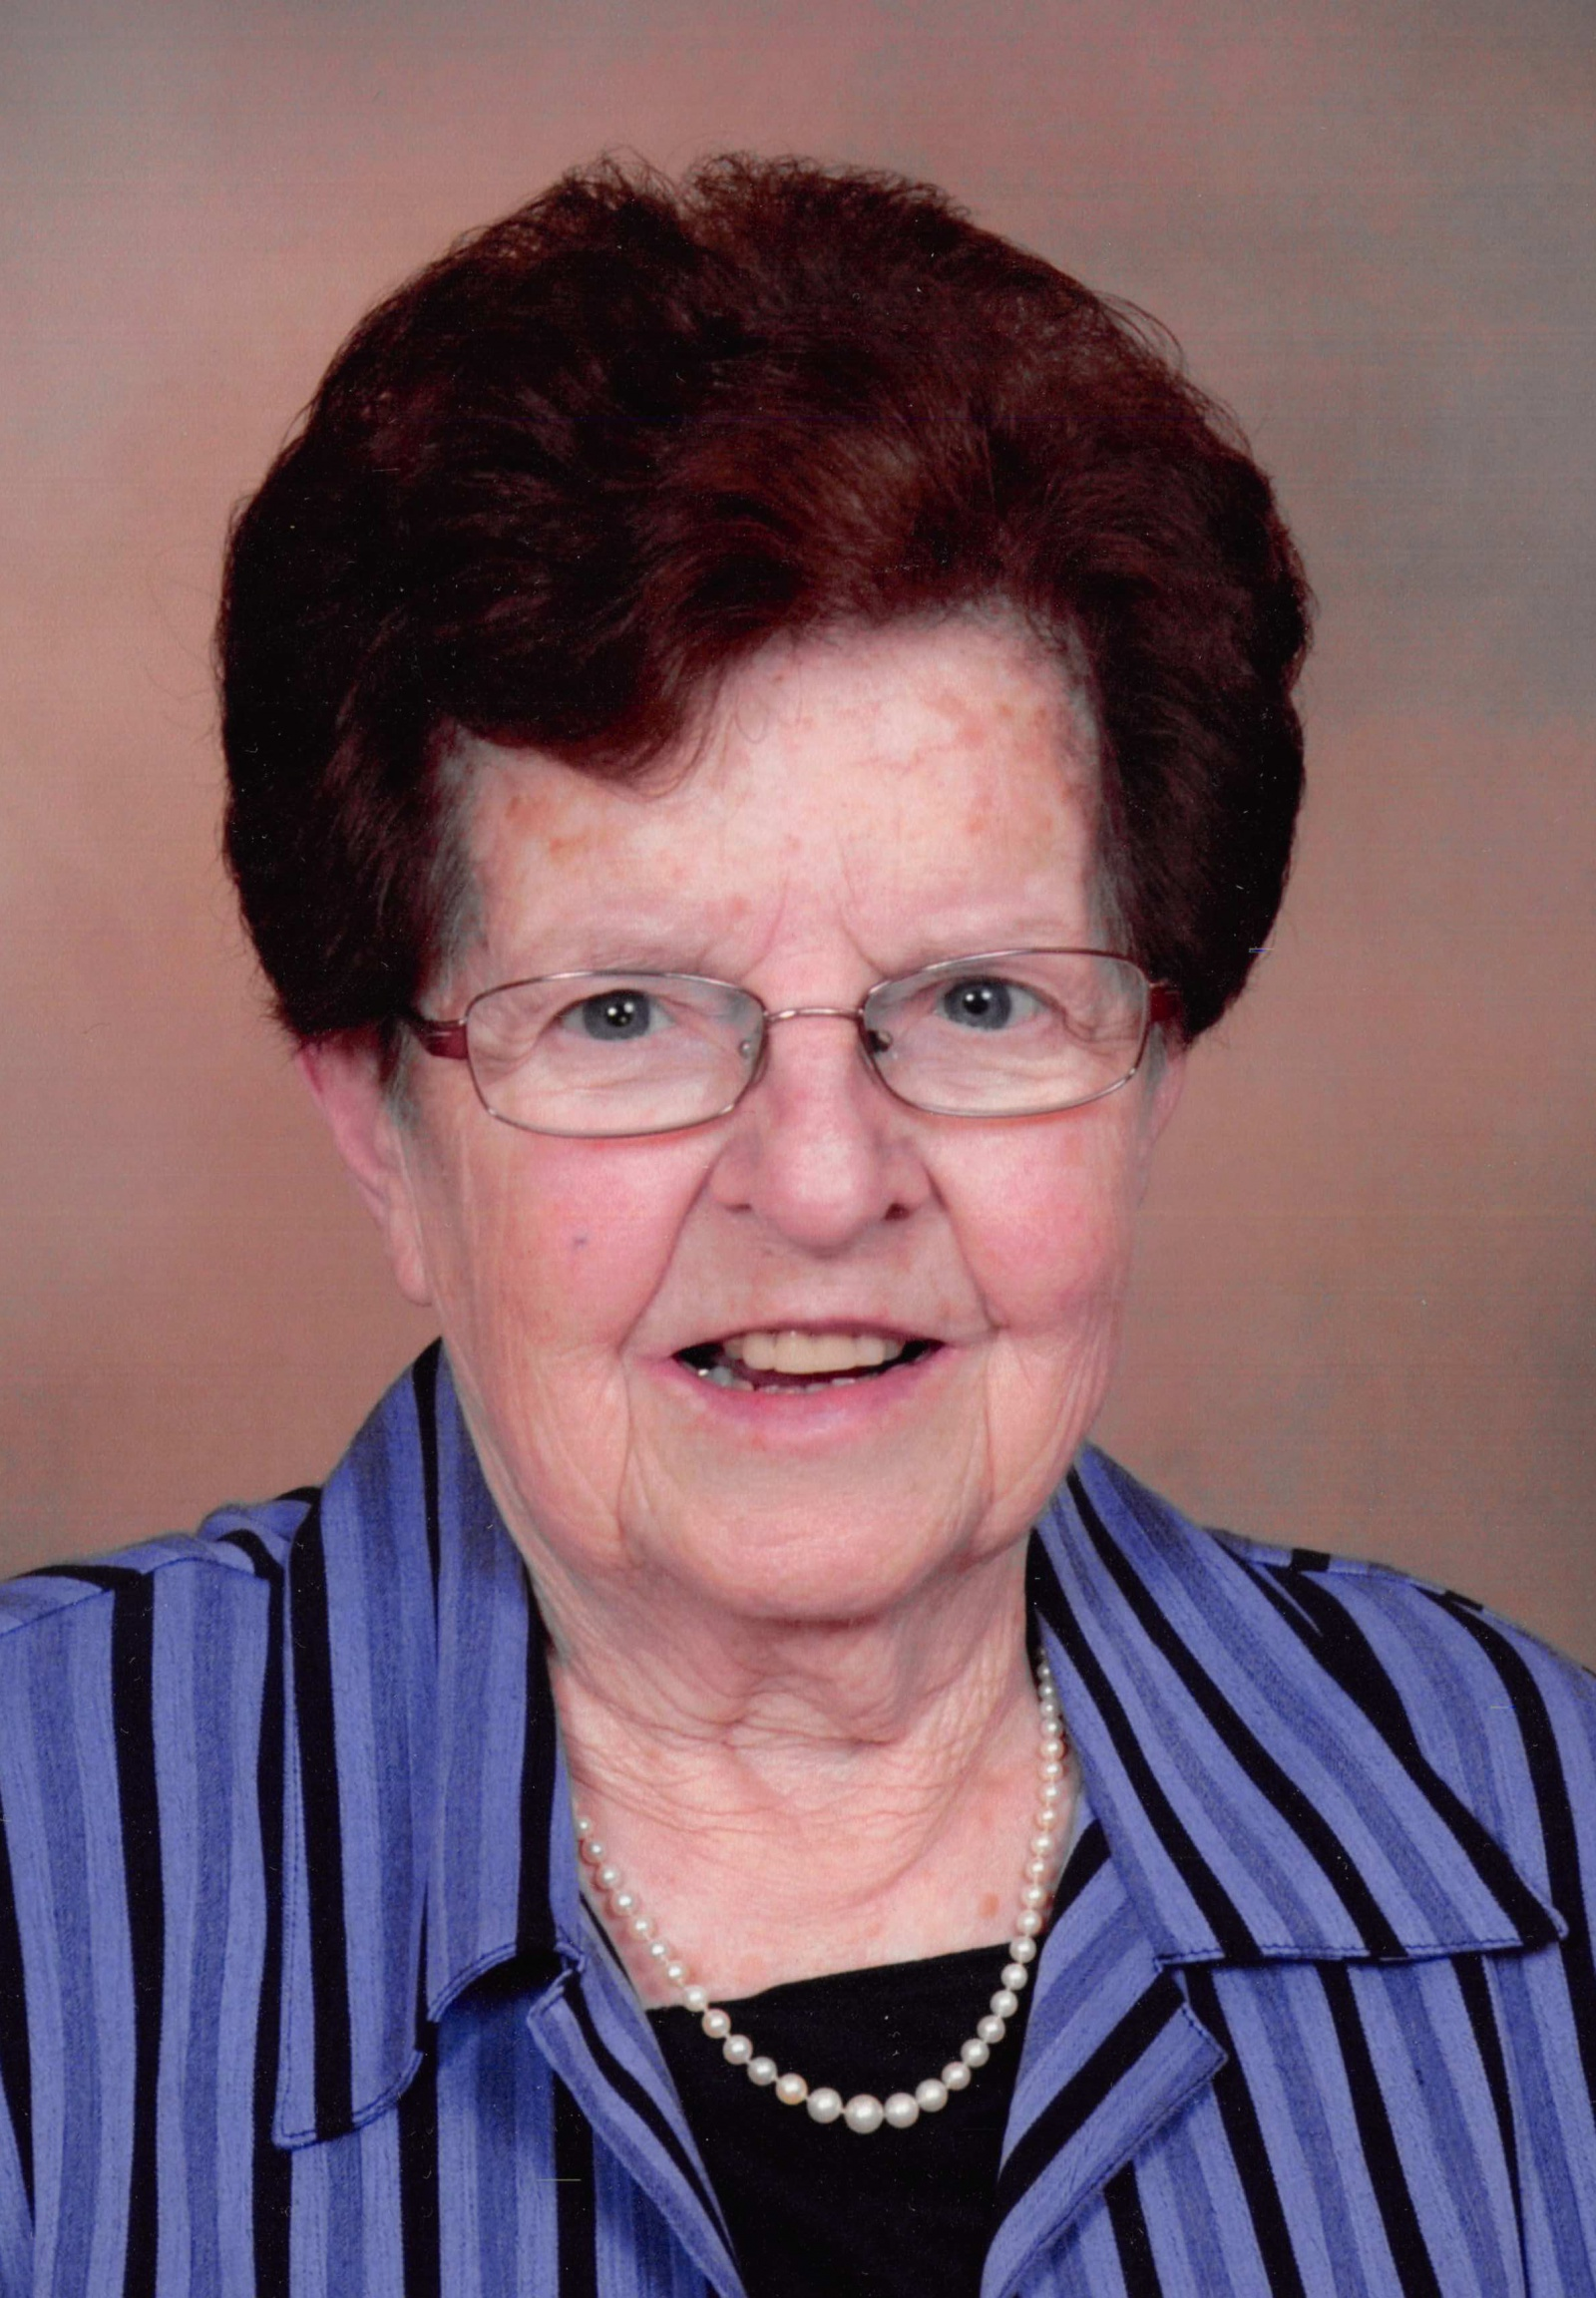 Funeral Services for Margie Berger, age 85